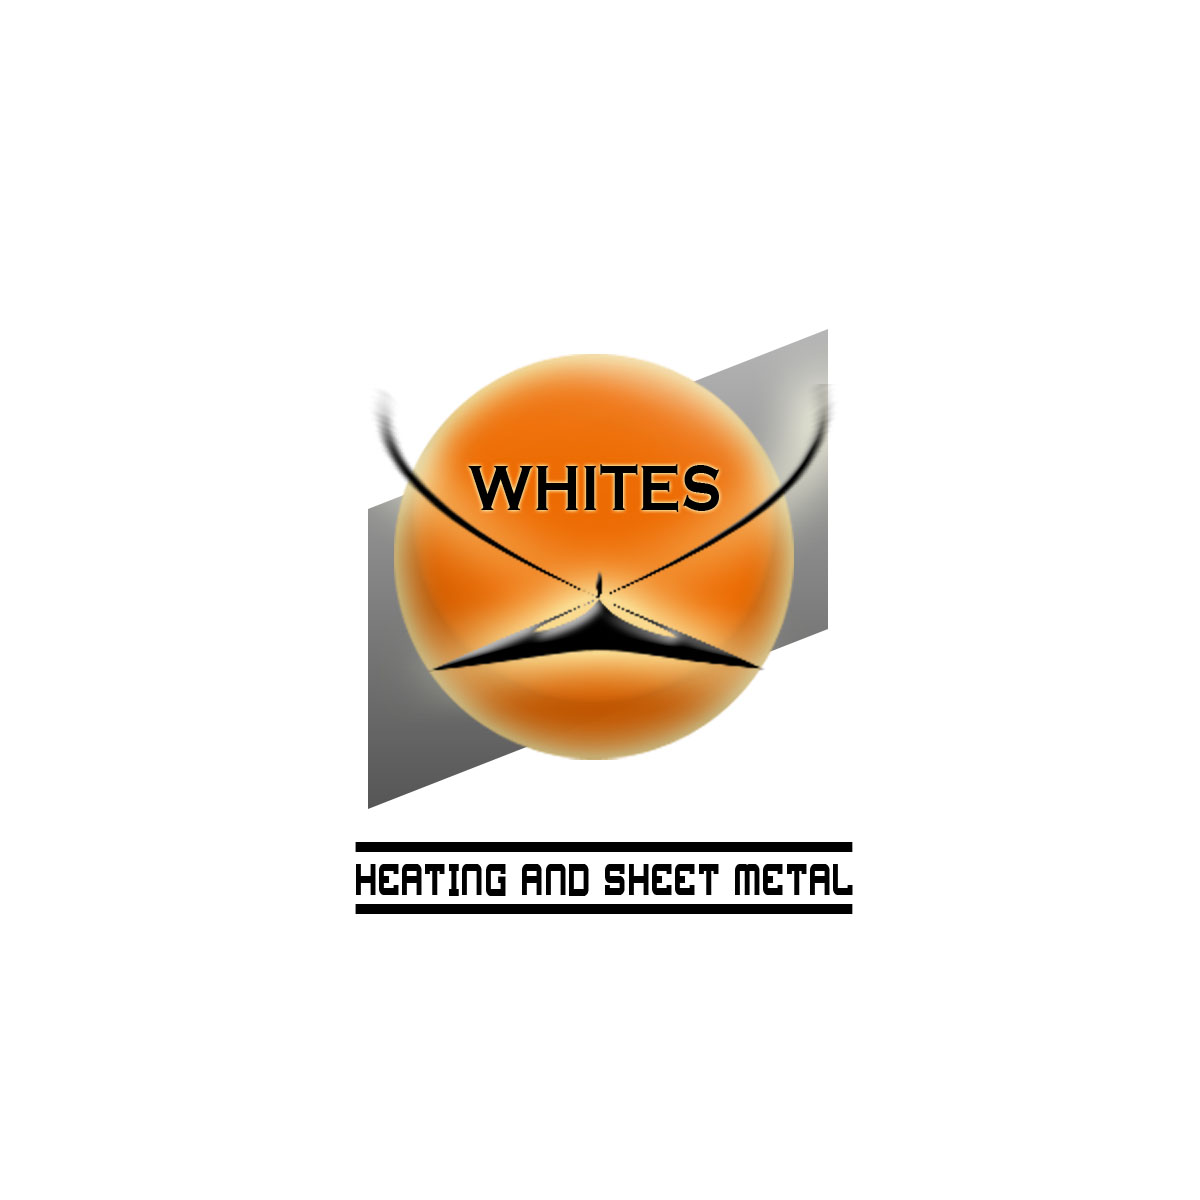 Logo Design by Moag - Entry No. 187 in the Logo Design Contest Imaginative Logo Design for White's Heating and Sheet Metal.